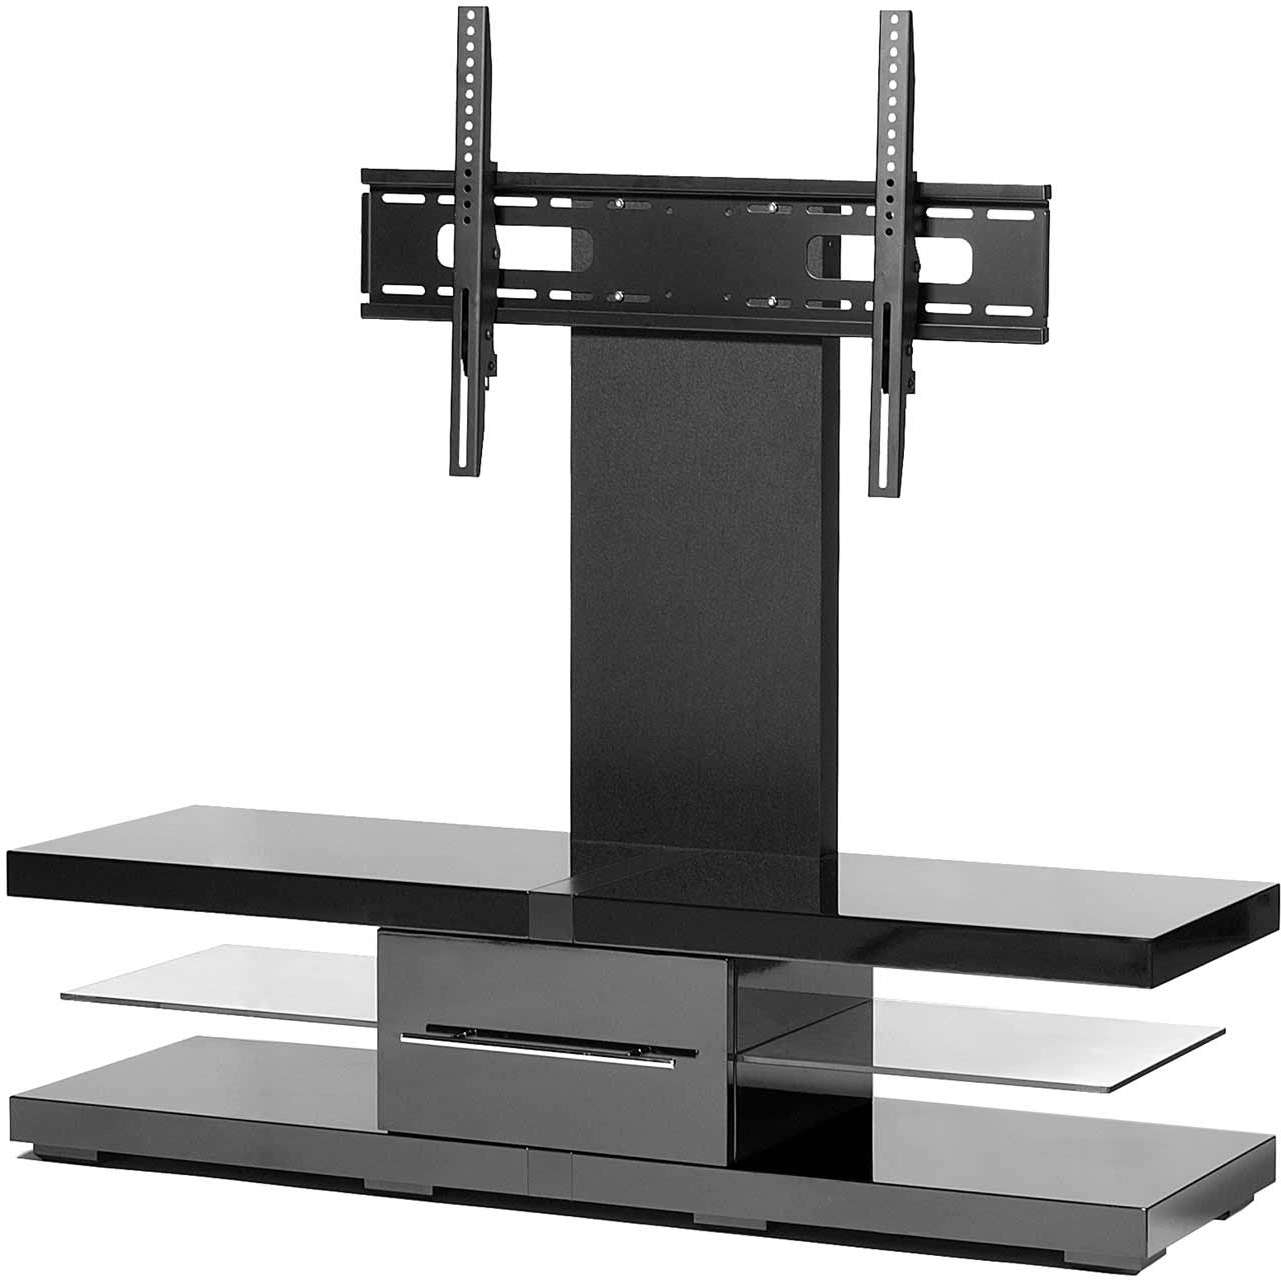 Ec130tvb | Techlink Tv Stand | For Tvs Up To 60"